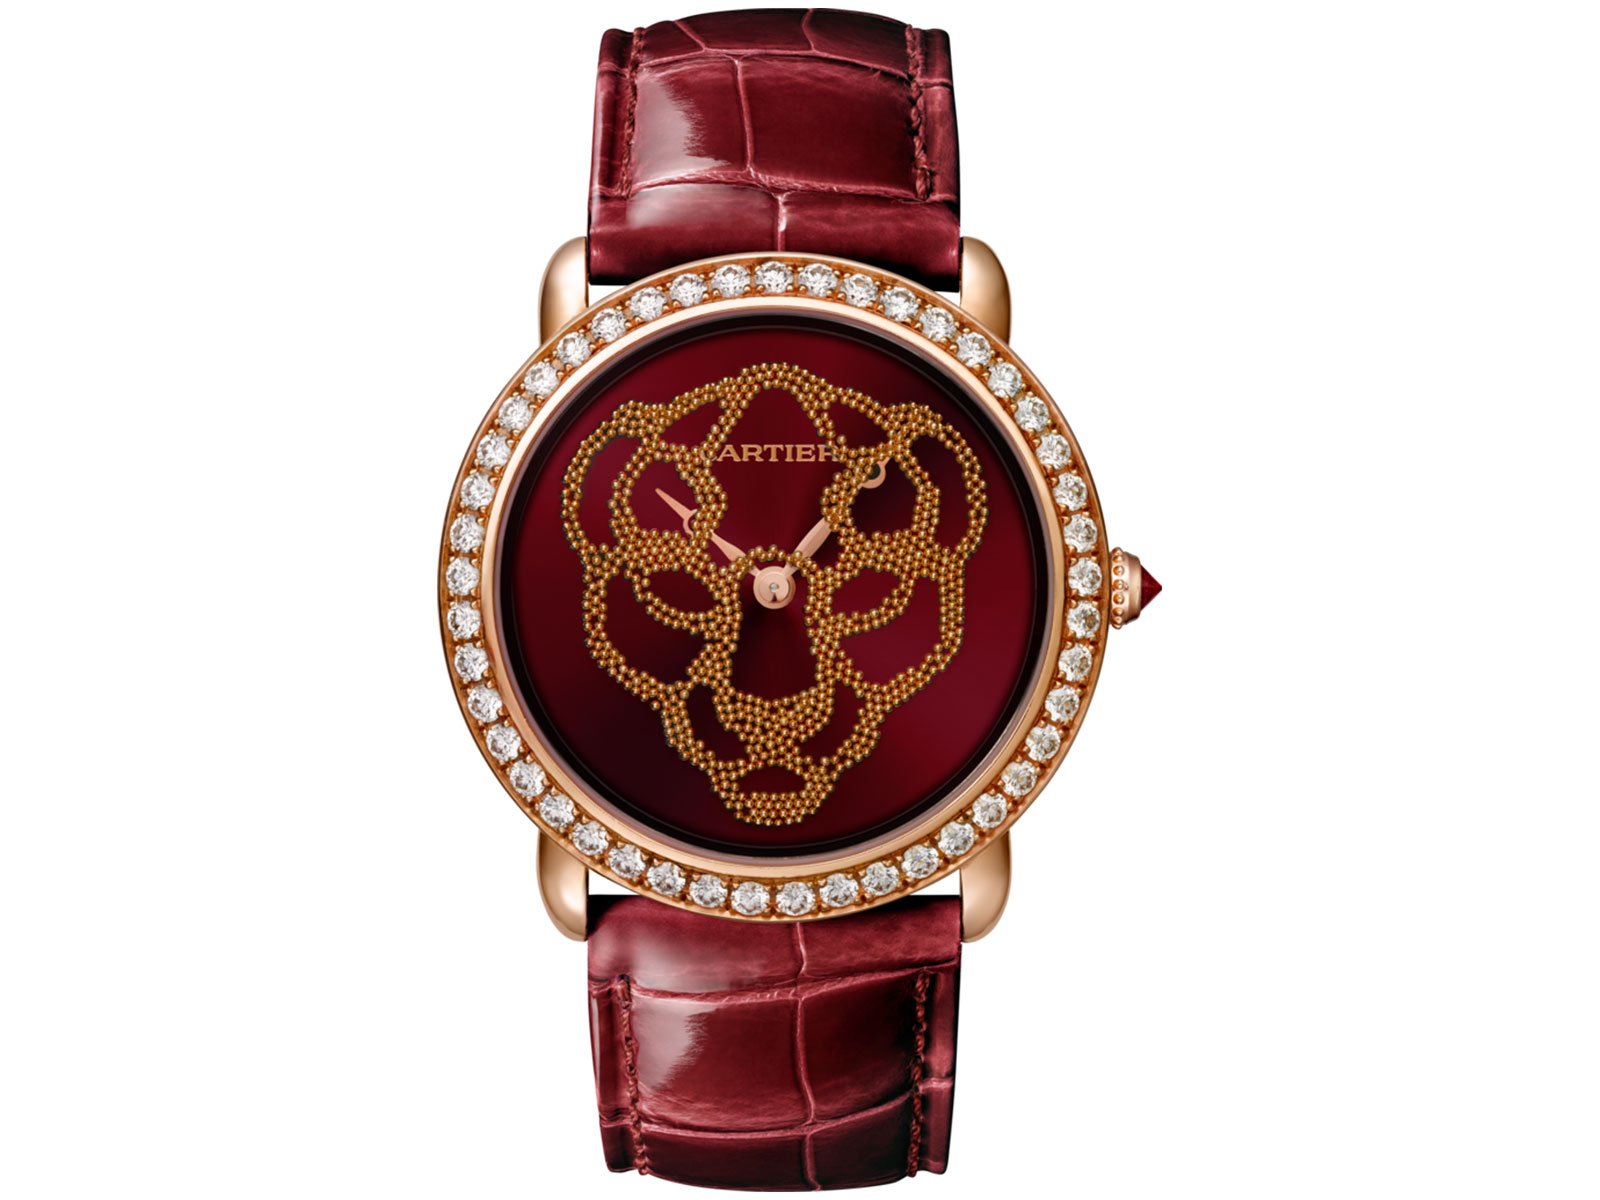 HP-01260-Cartier-Panthere-Collection-Sihh2018-Red-1.jpg